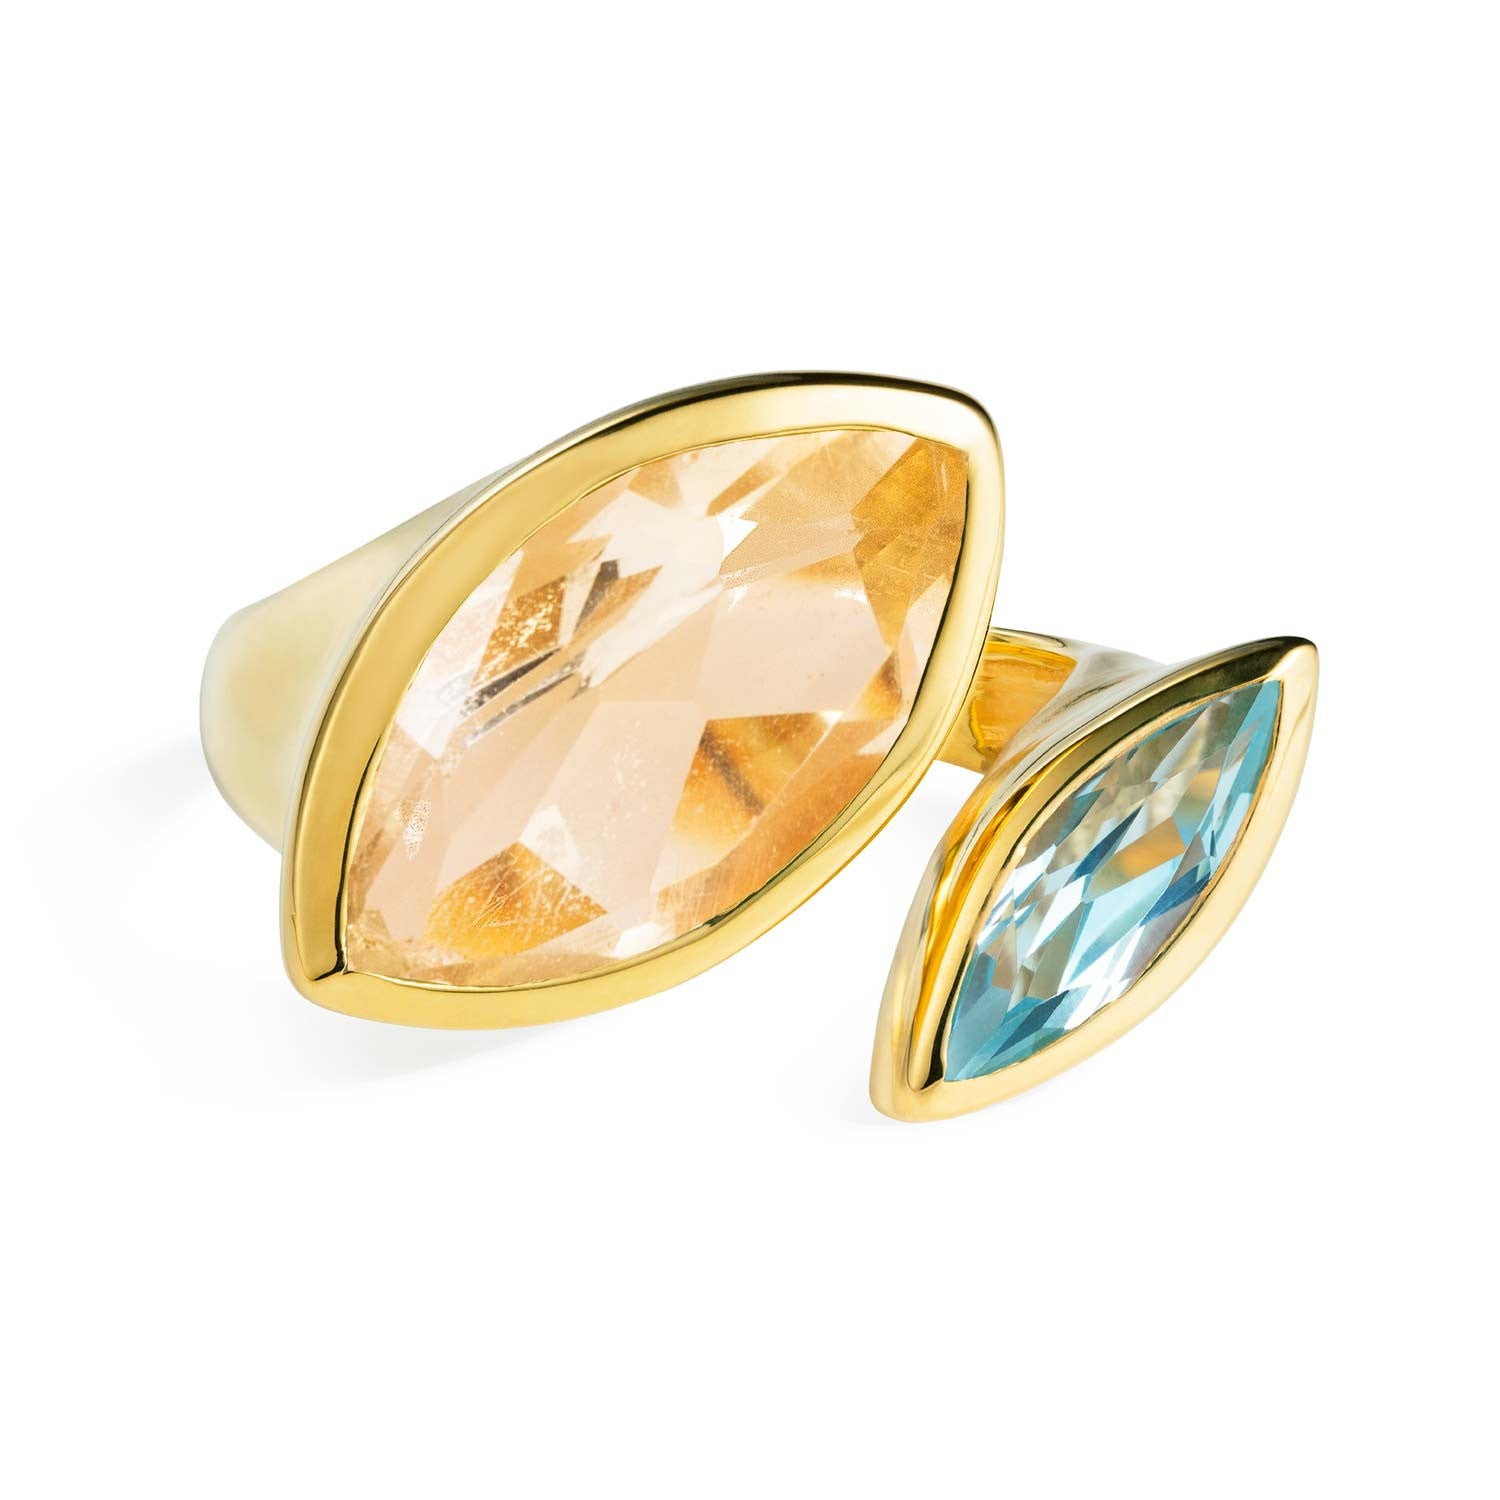 Celestine Gold Cocktail Ring with Citrine and Aqua Chalcedony